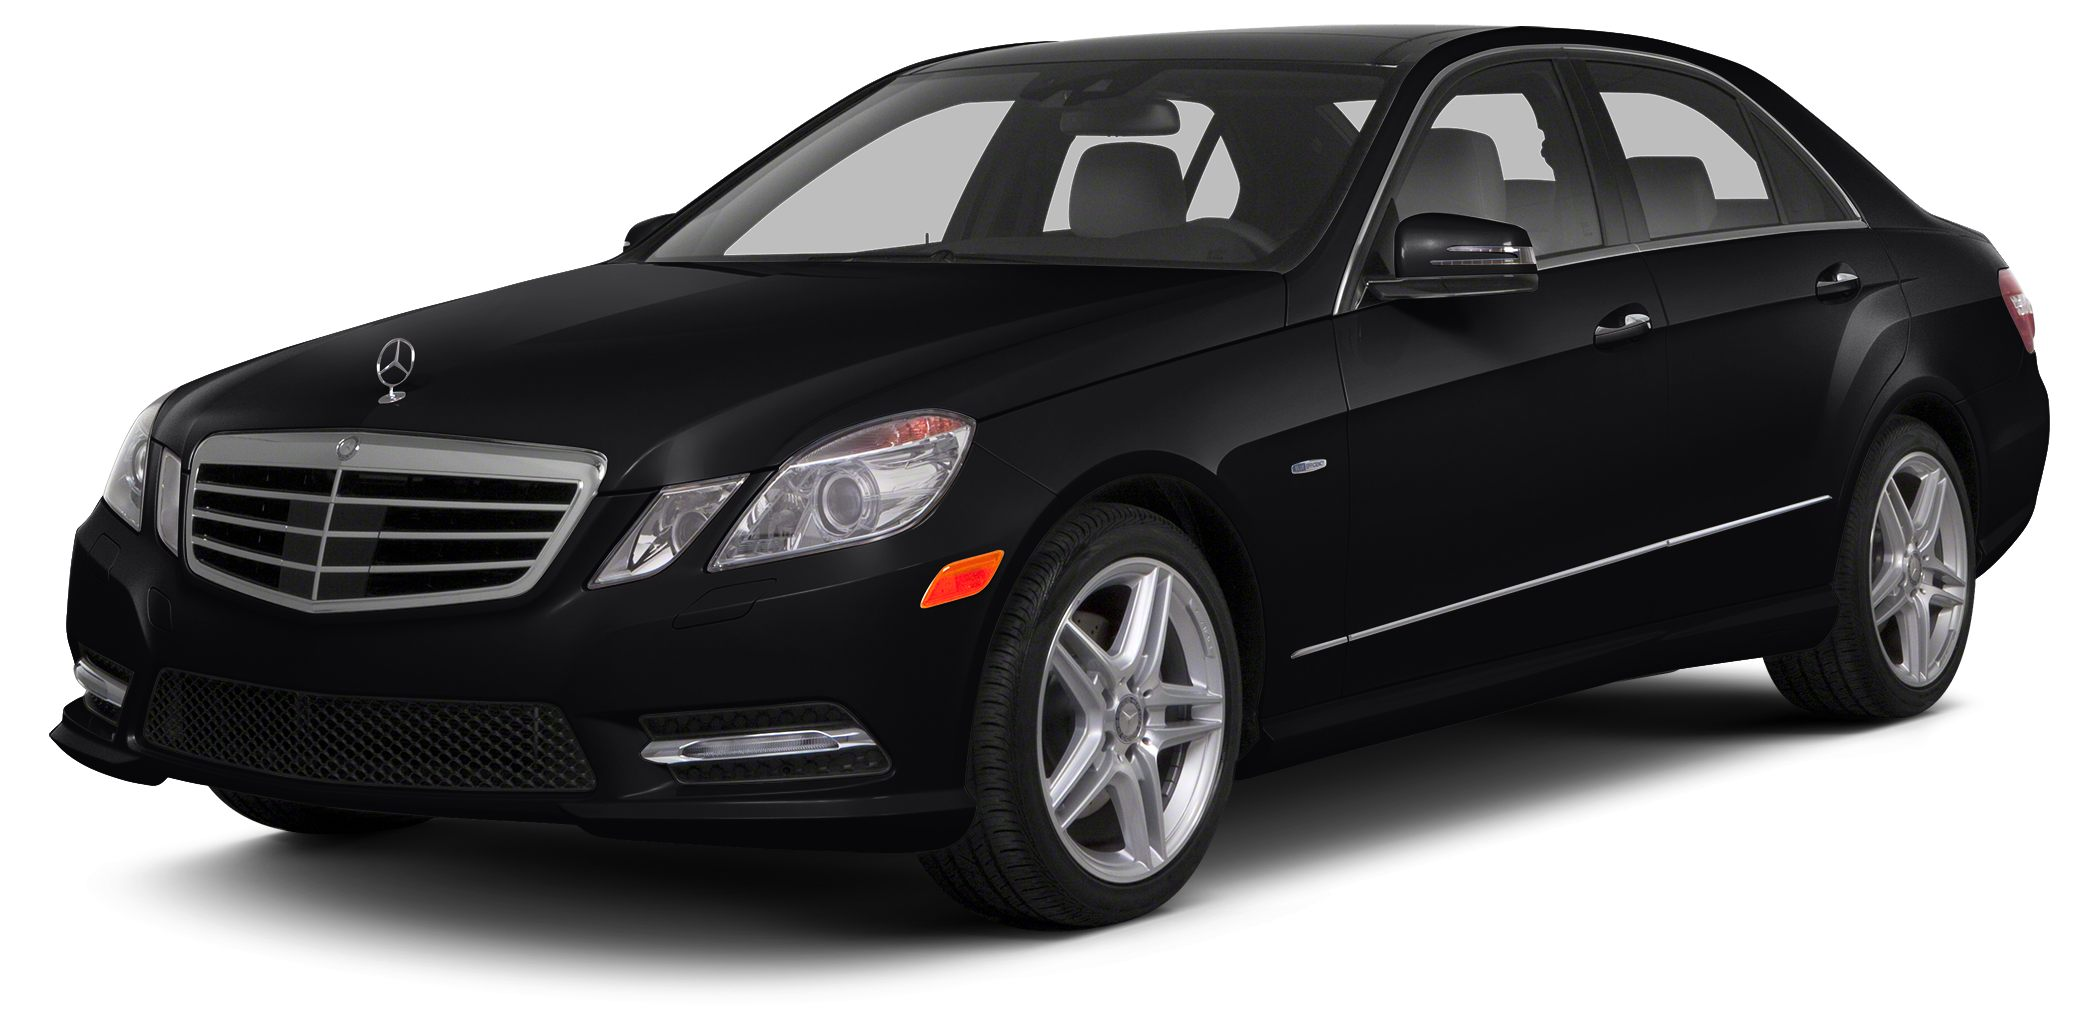 2013 MERCEDES E-Class E350 4MATIC  WHEN IT COMES TO EXCELLENCE IN USED CAR SALESYOU KNOW YOU